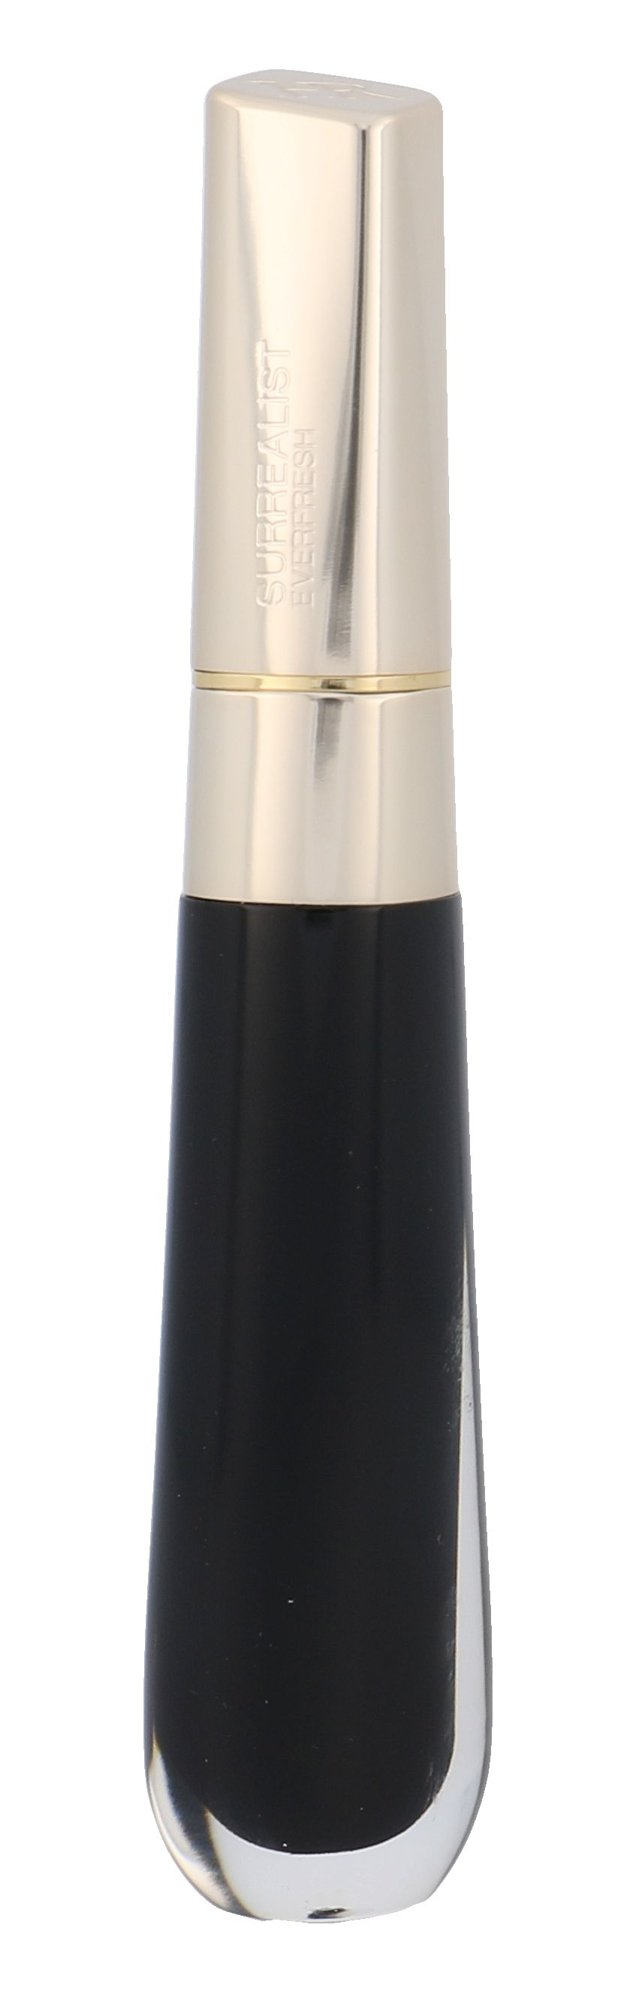 Helena Rubinstein Surrealist Everfresh Cosmetic 3,7ml 01 Surrealistic Black